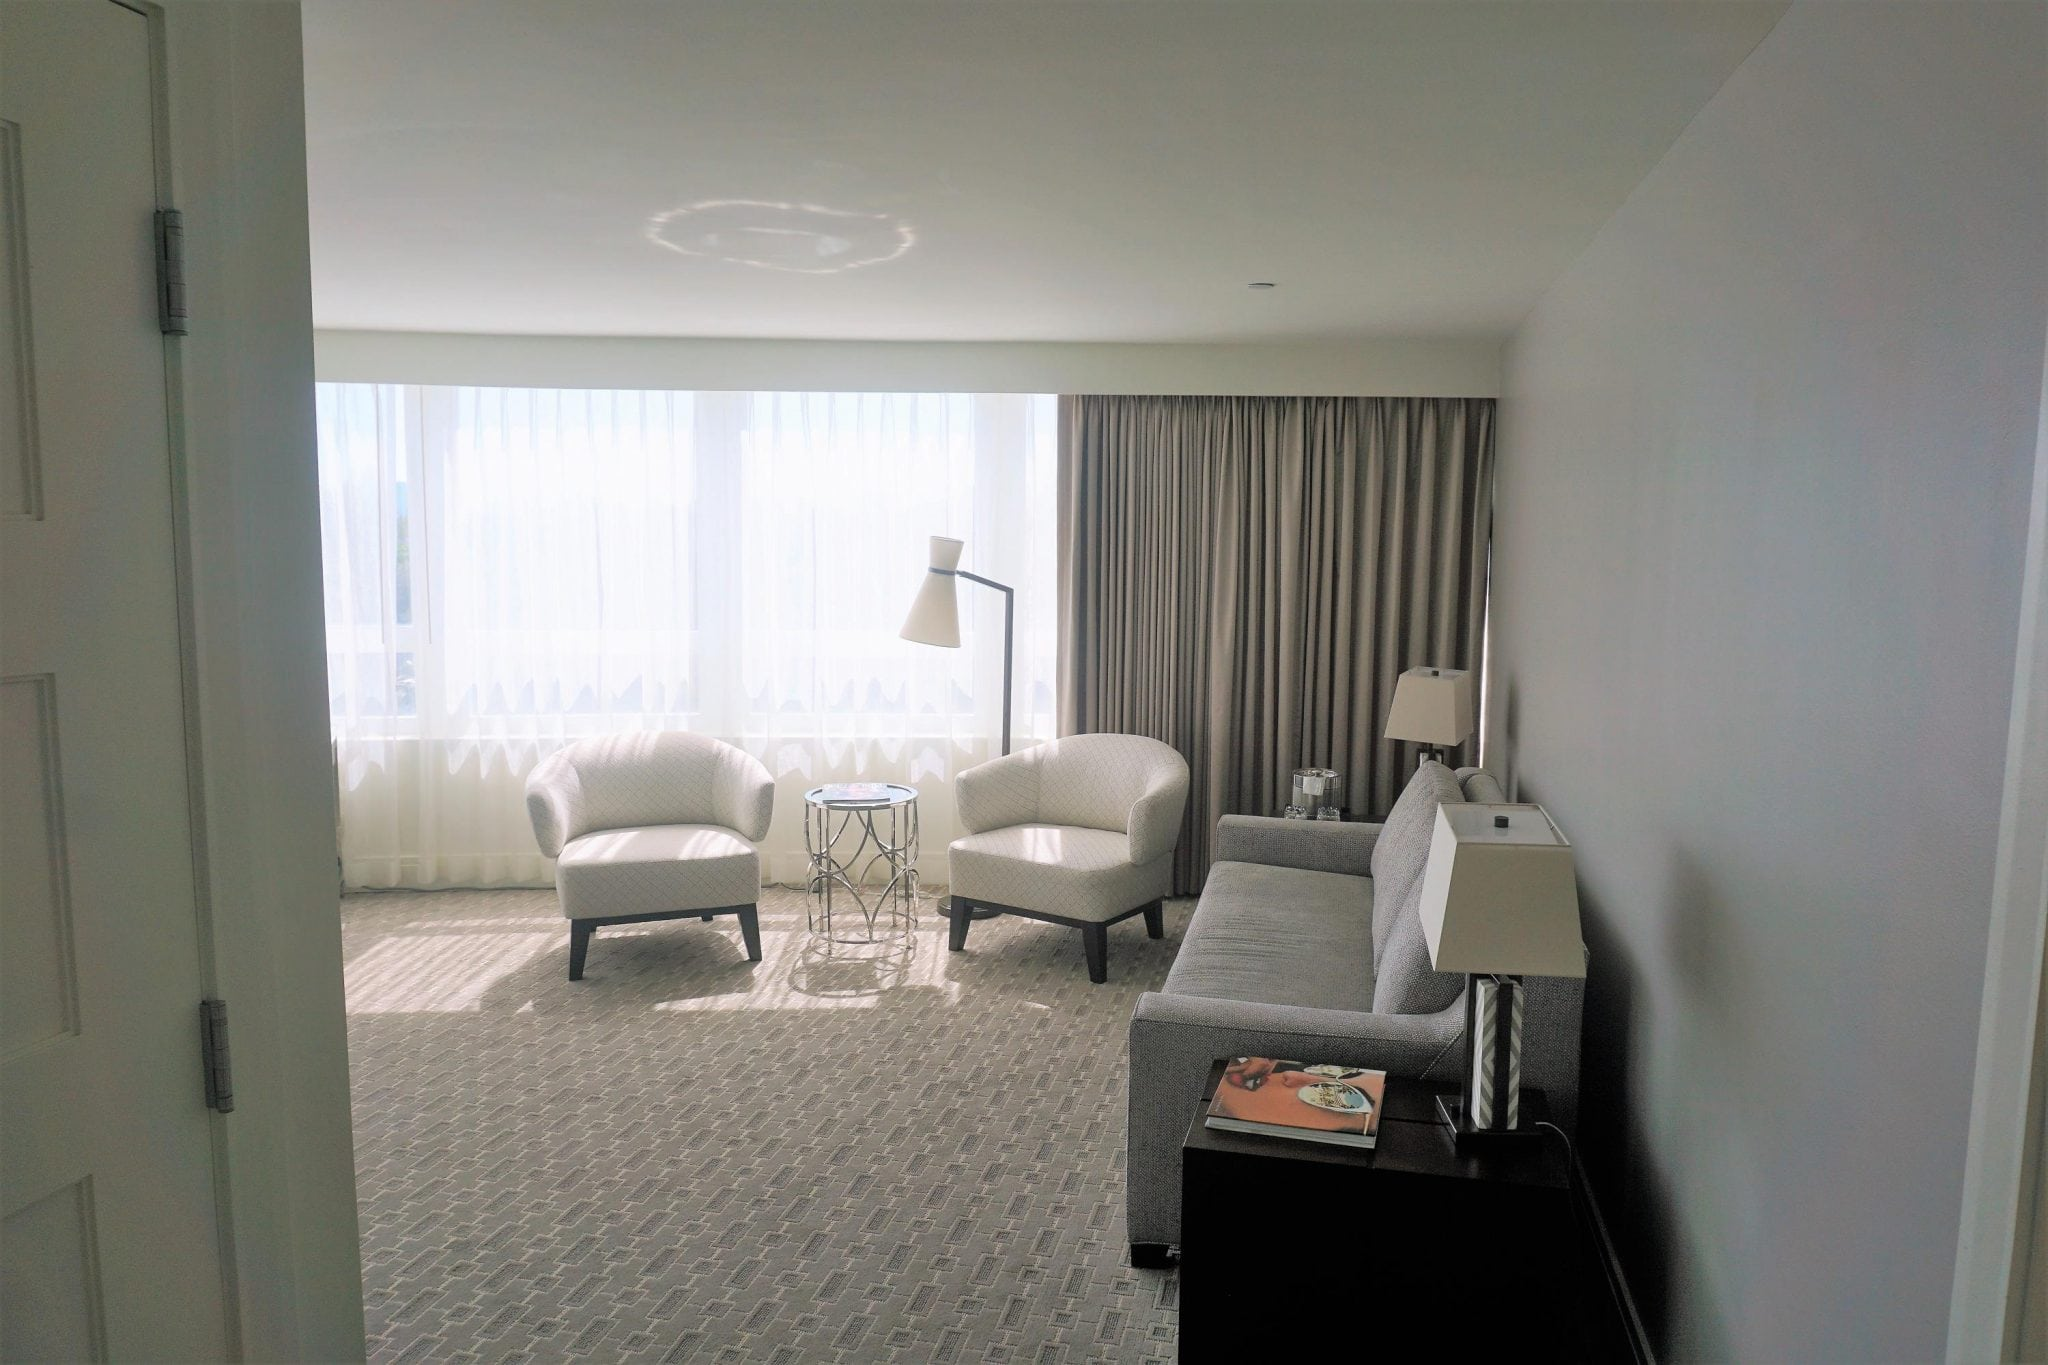 Fontainebleau Sitting Area